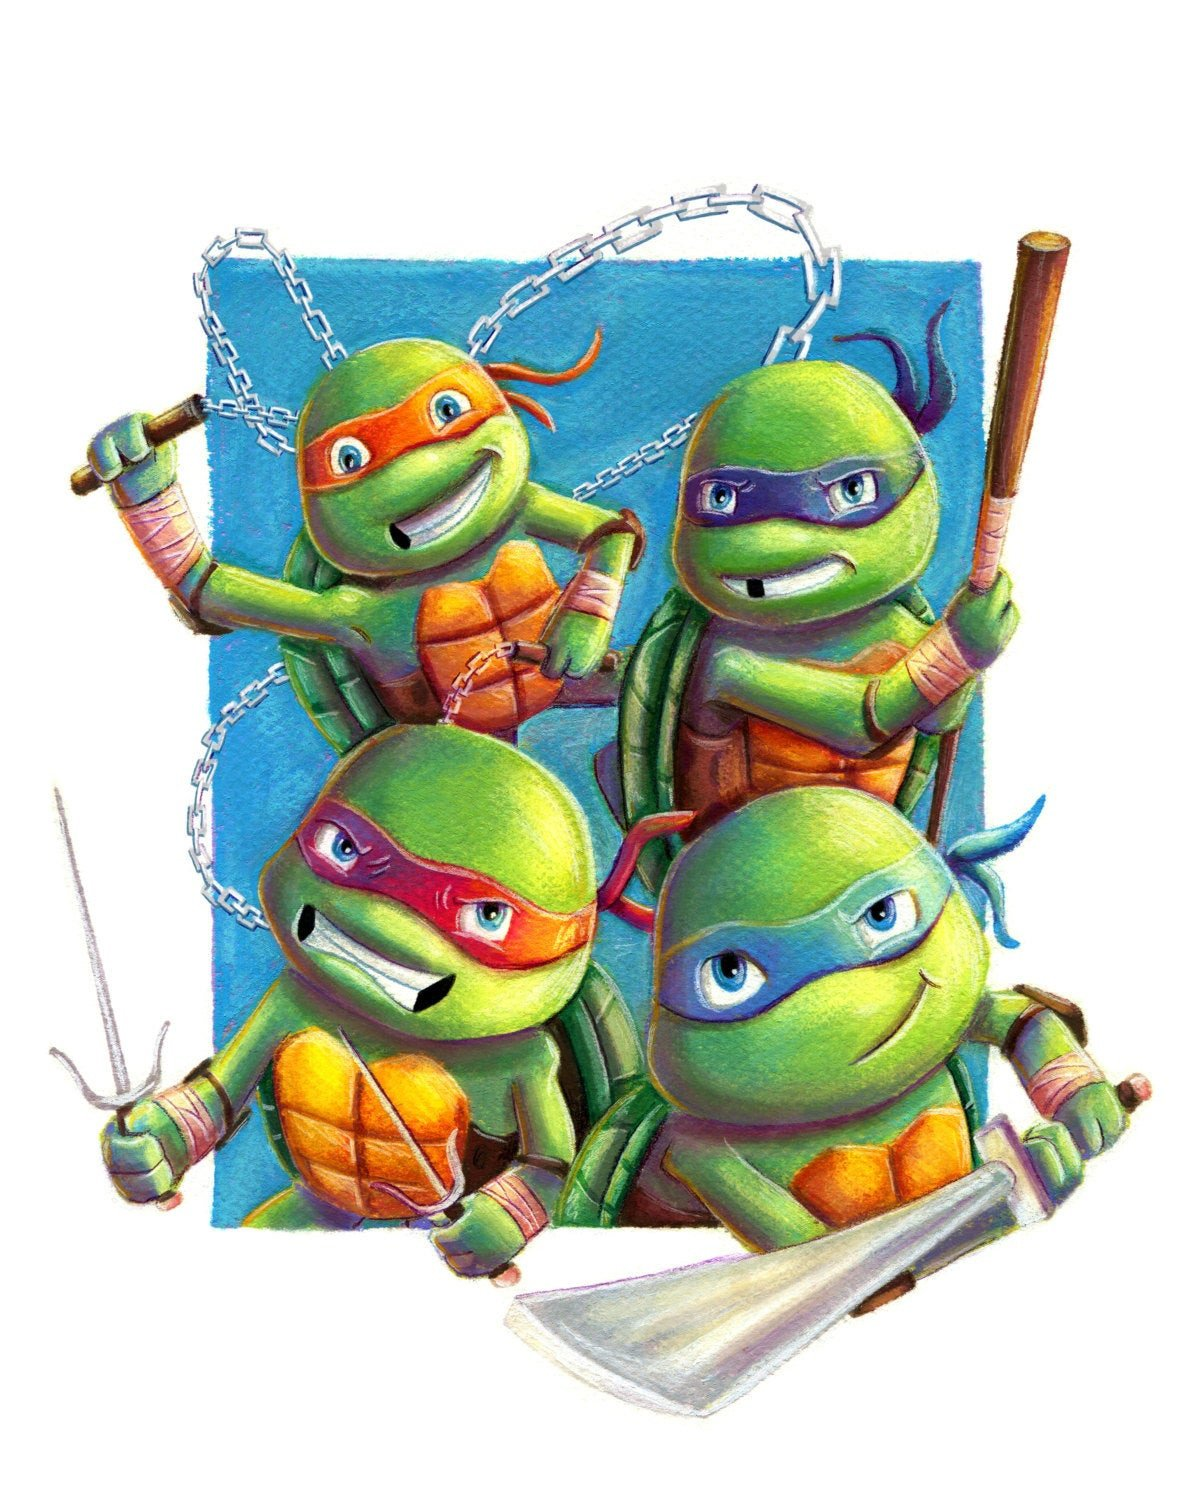 Teenage Mutant Ninja Turtles Bedroom Set Fresh Teenage Mutant Ninja Turtles Bedroom Curtains